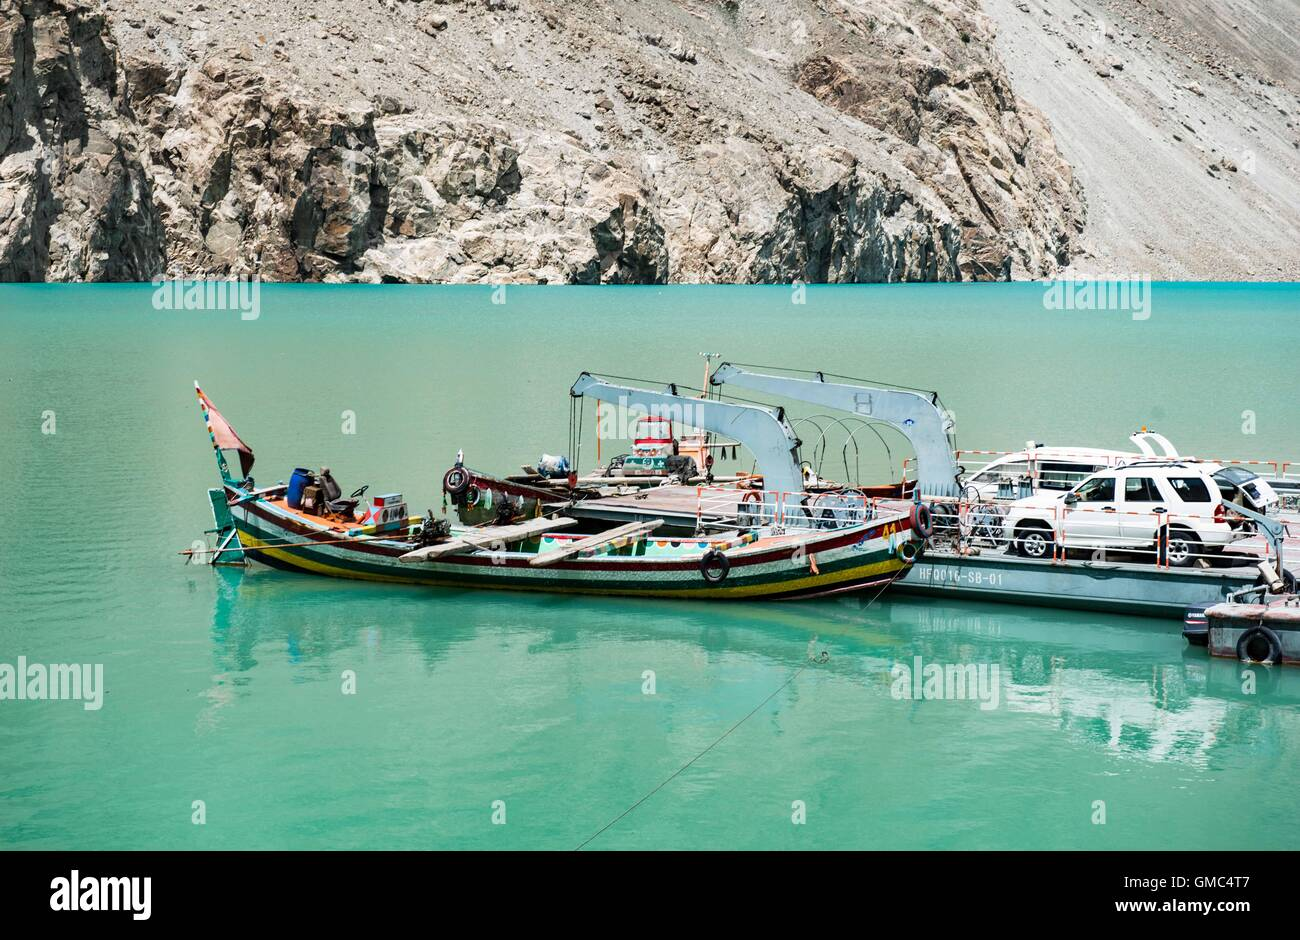 Abandoned boats and pontoon in Attabad Lake, Gojal, also known as Gojal Lake - Stock Image